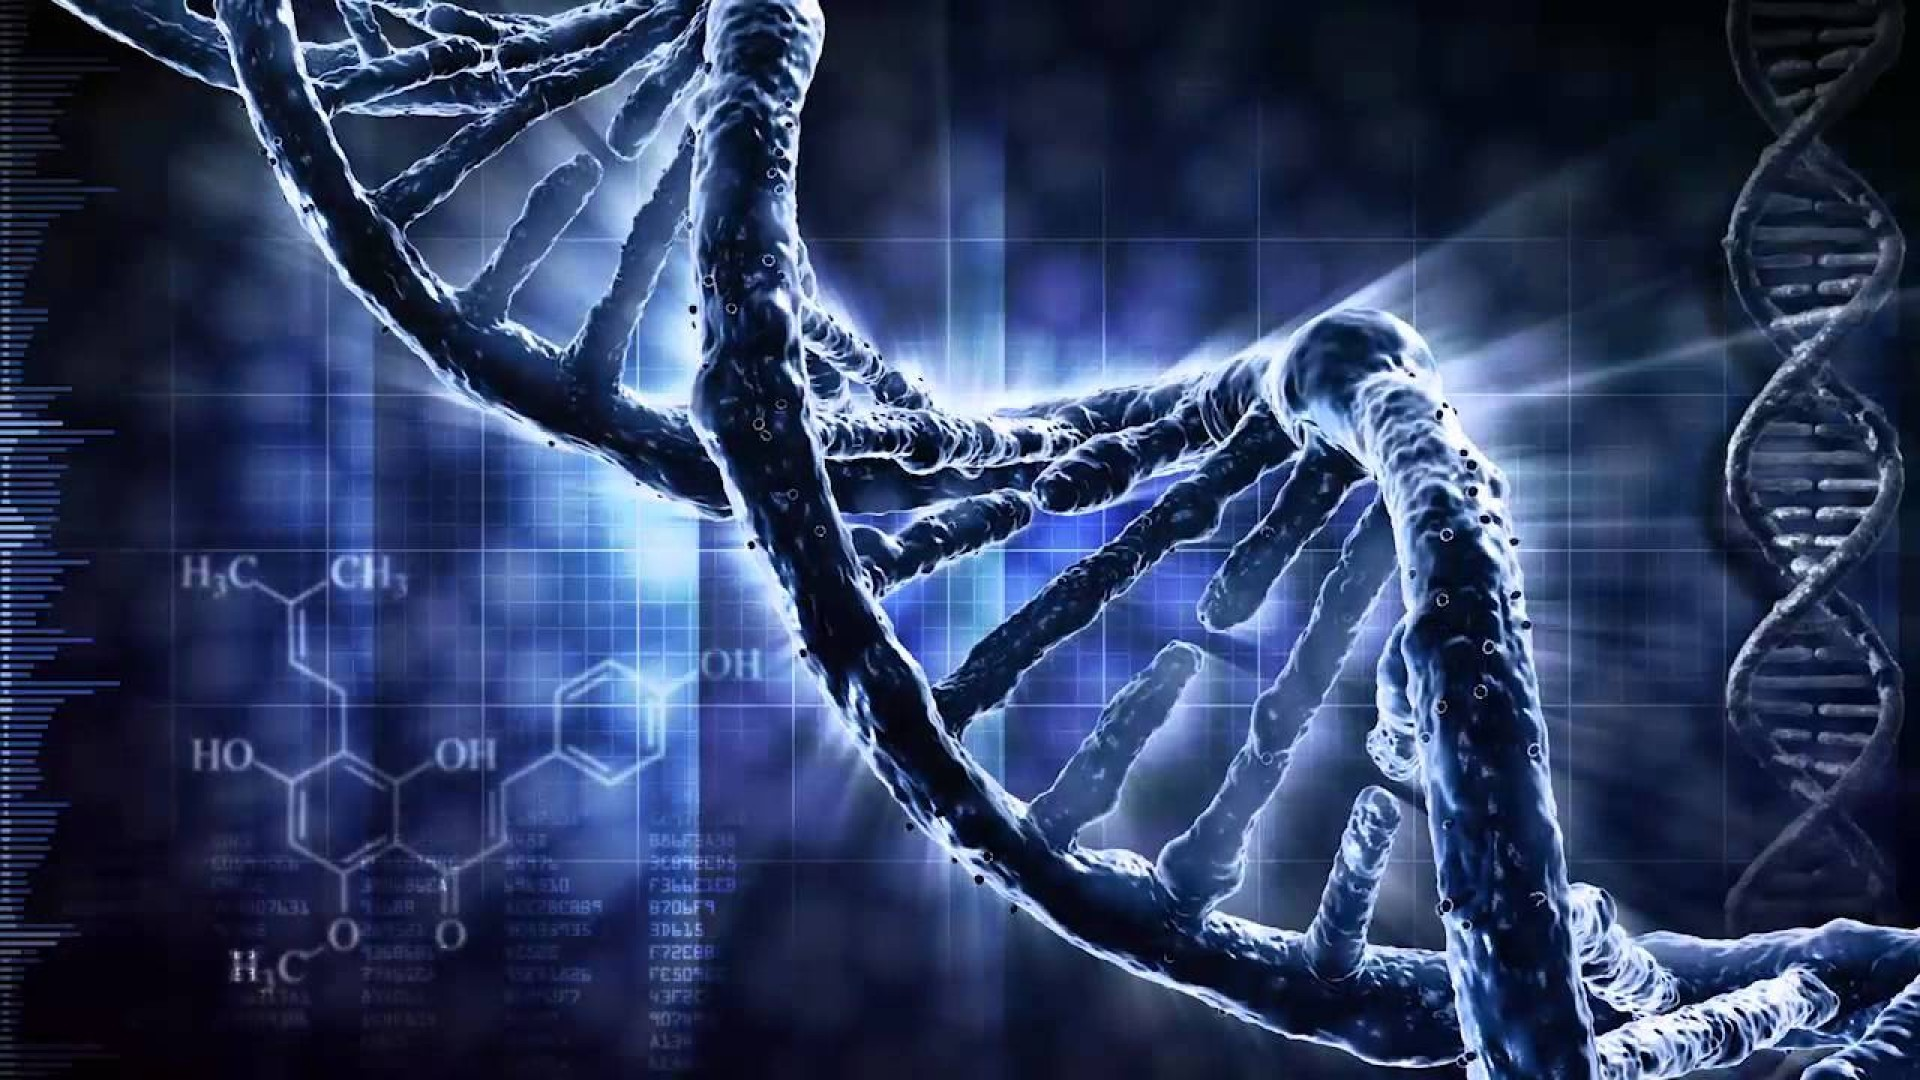 3d Motivational Wallpapers Dna Wallpaper 69 Immagini